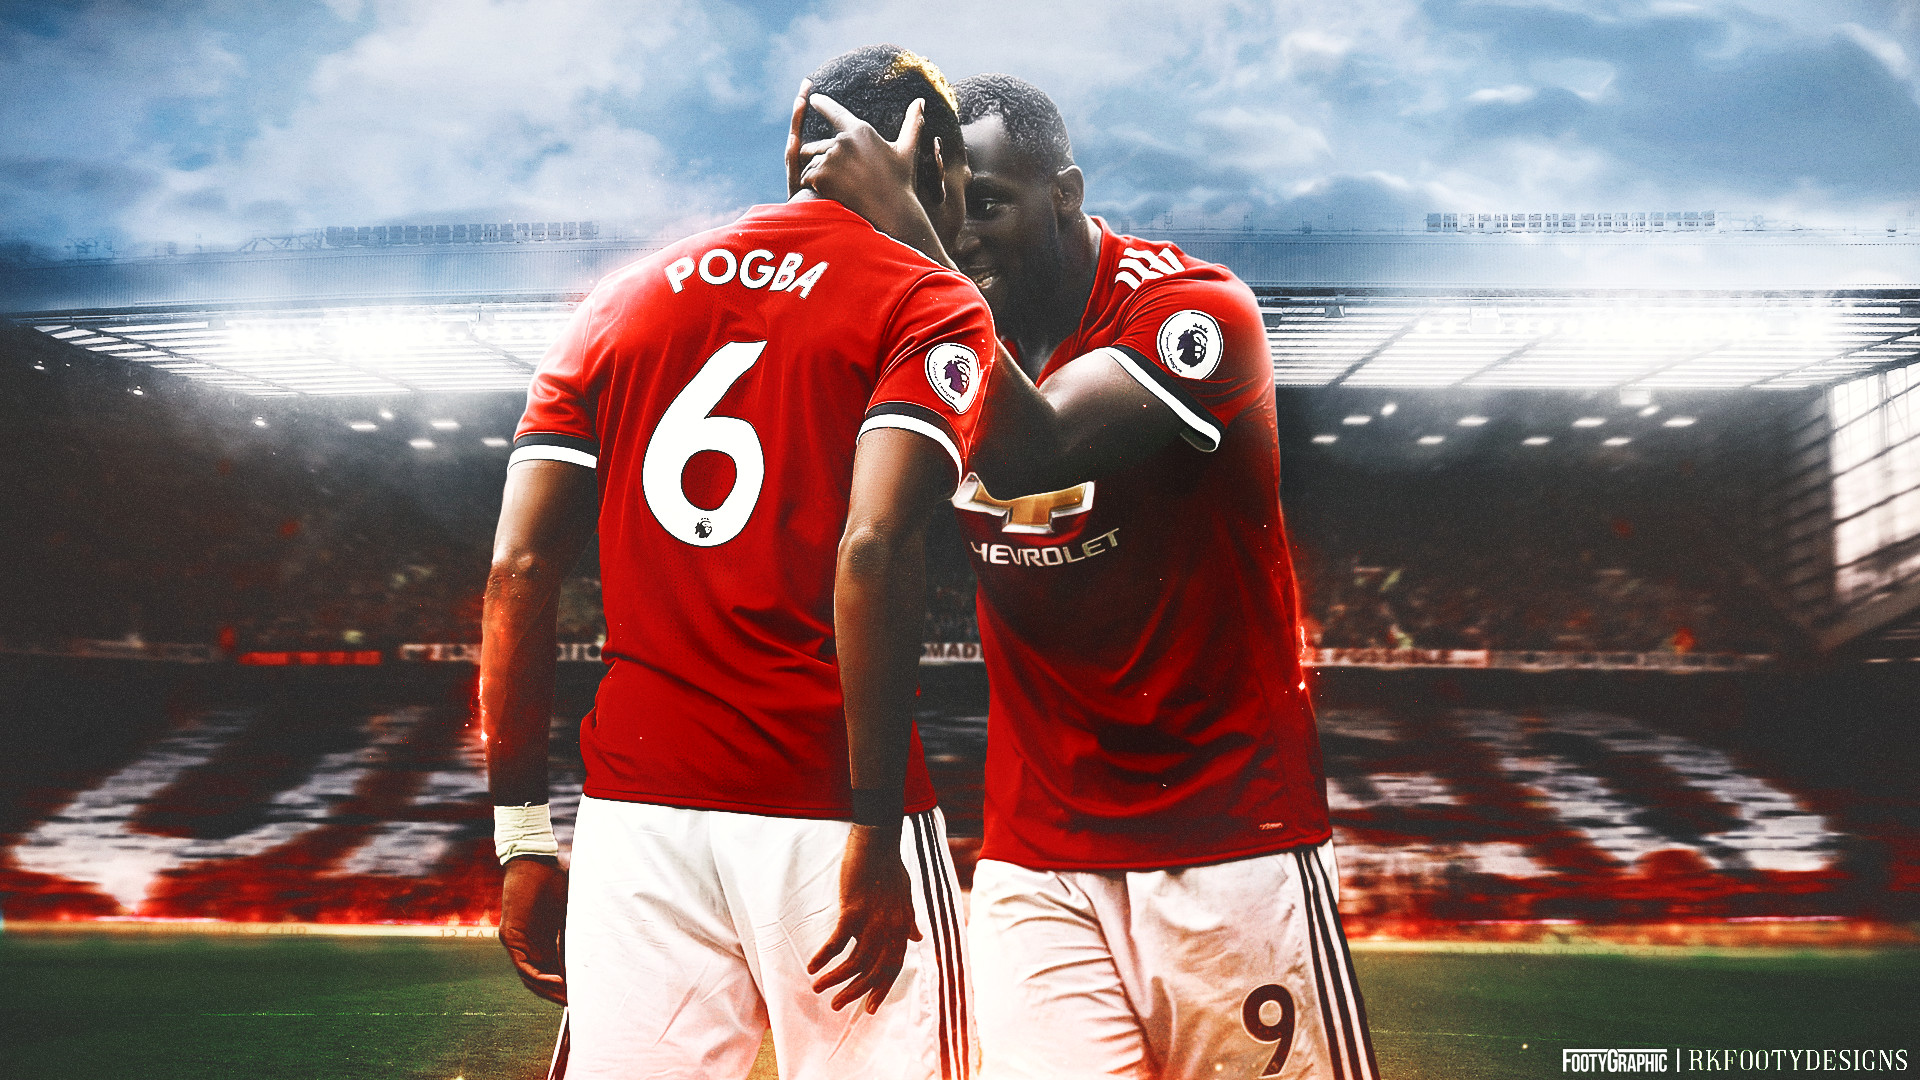 Pogba Wallpapers (81+ Images